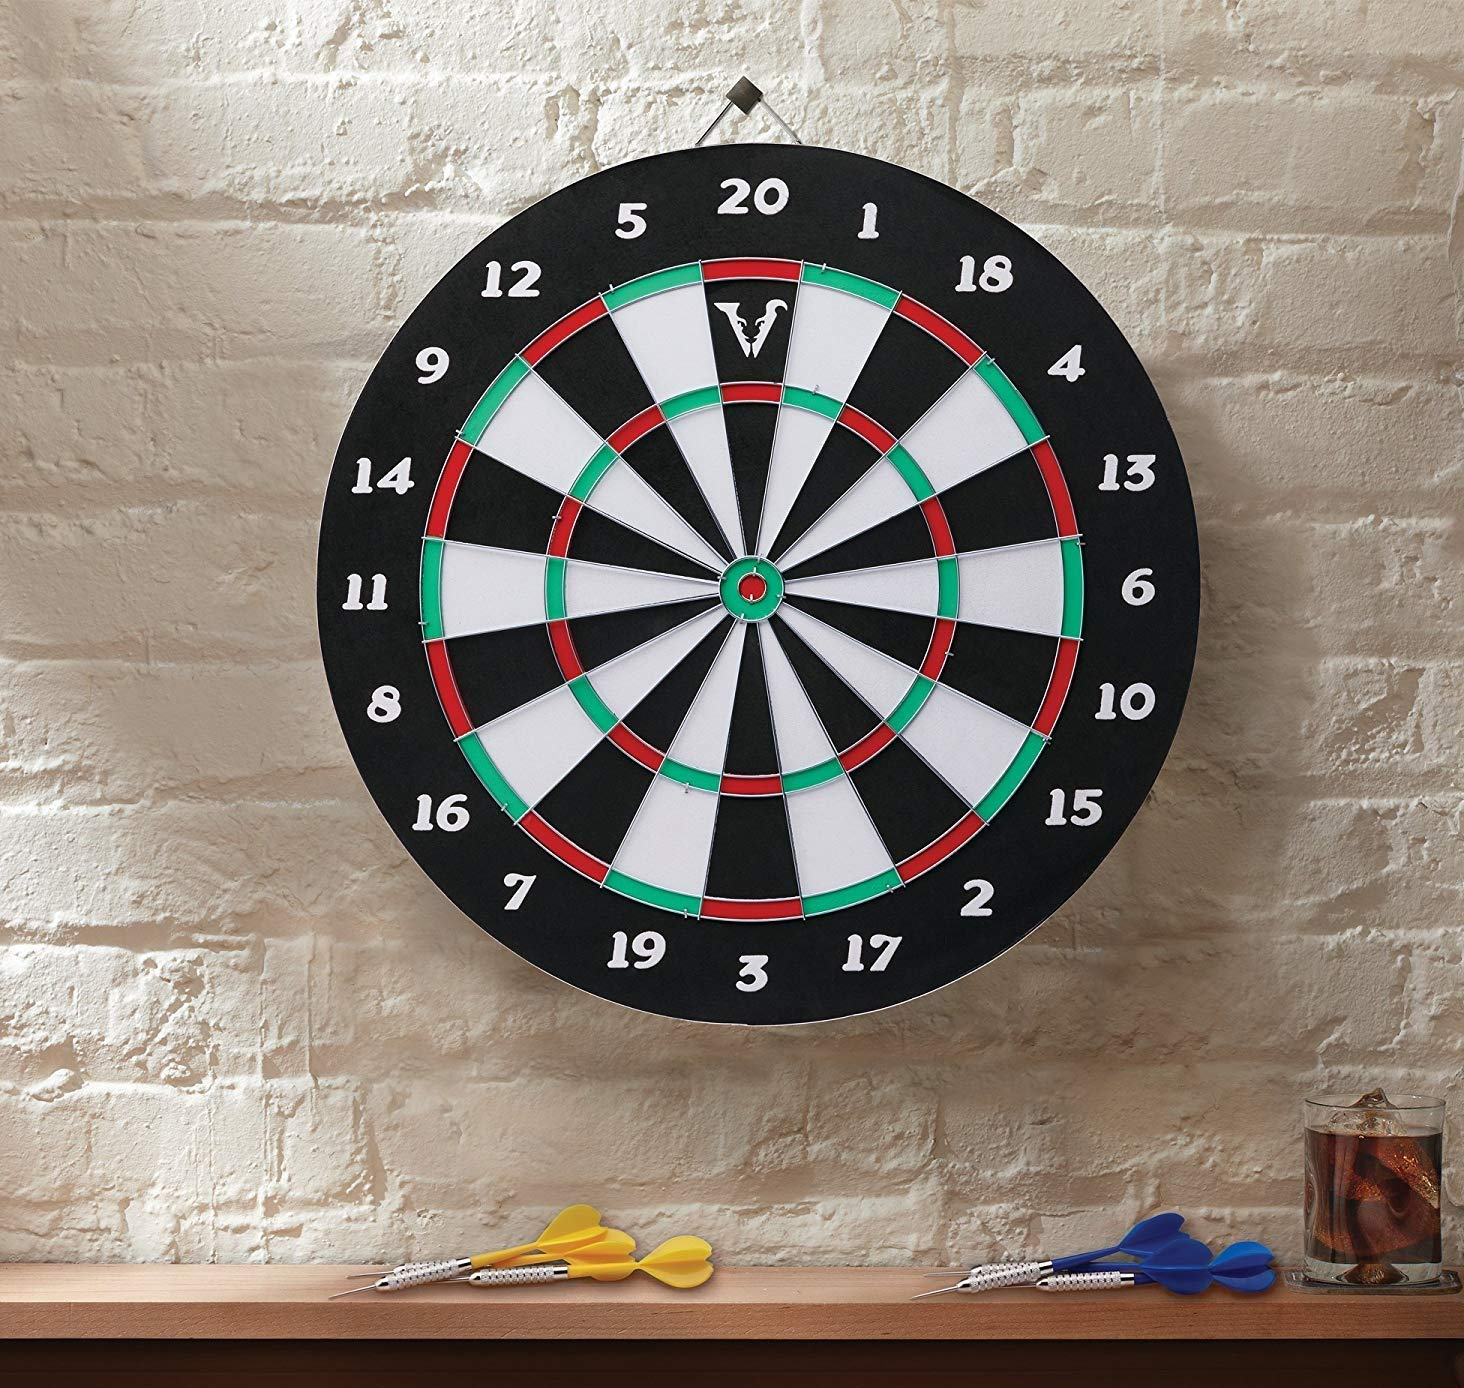 High-Grade Compressed Sisal Board with Rotating Number Ring Metal Radial Spider Wire Viper Shot King Regulation Bristle Steel Tip Dartboard Set with Staple-Free Bullseye Includes 6 Steel Tip Darts/…